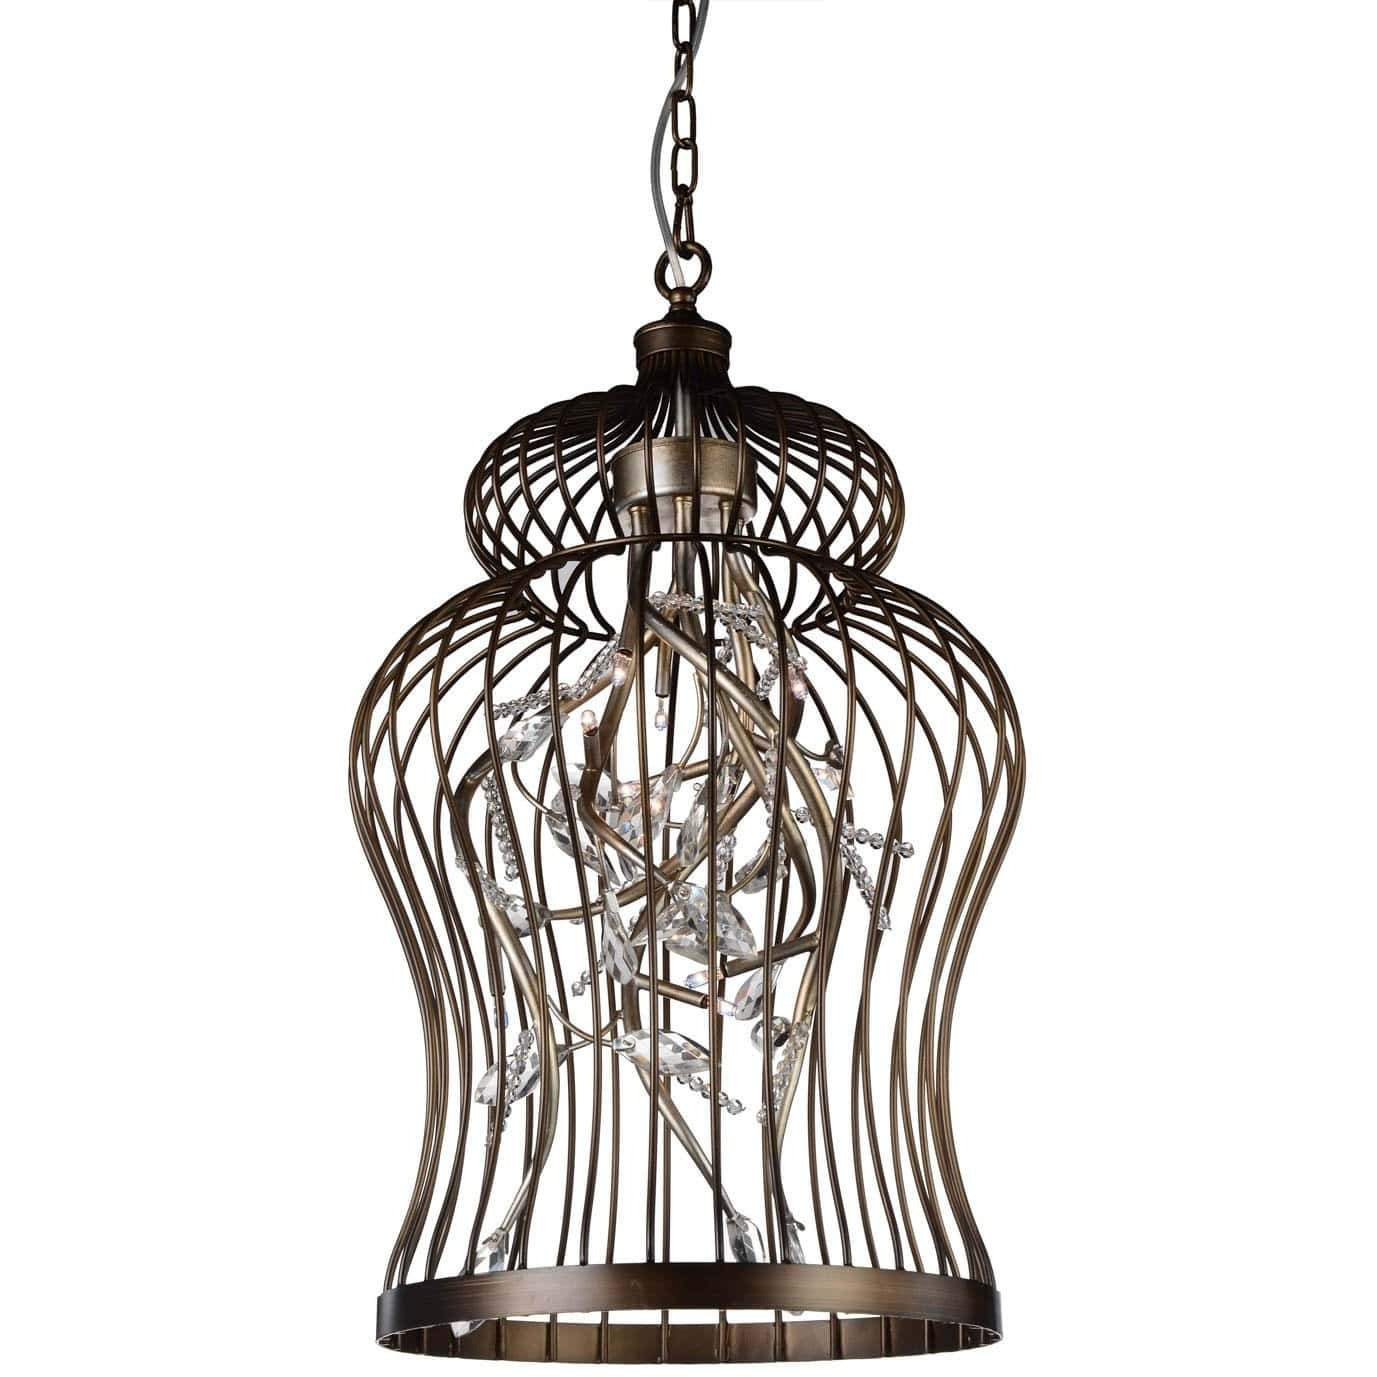 CWI Lighting Chandeliers Antique Gold Molus 9 Light Down Chandelier with Antique Gold finish by CWI Lighting 9887P16-9-182